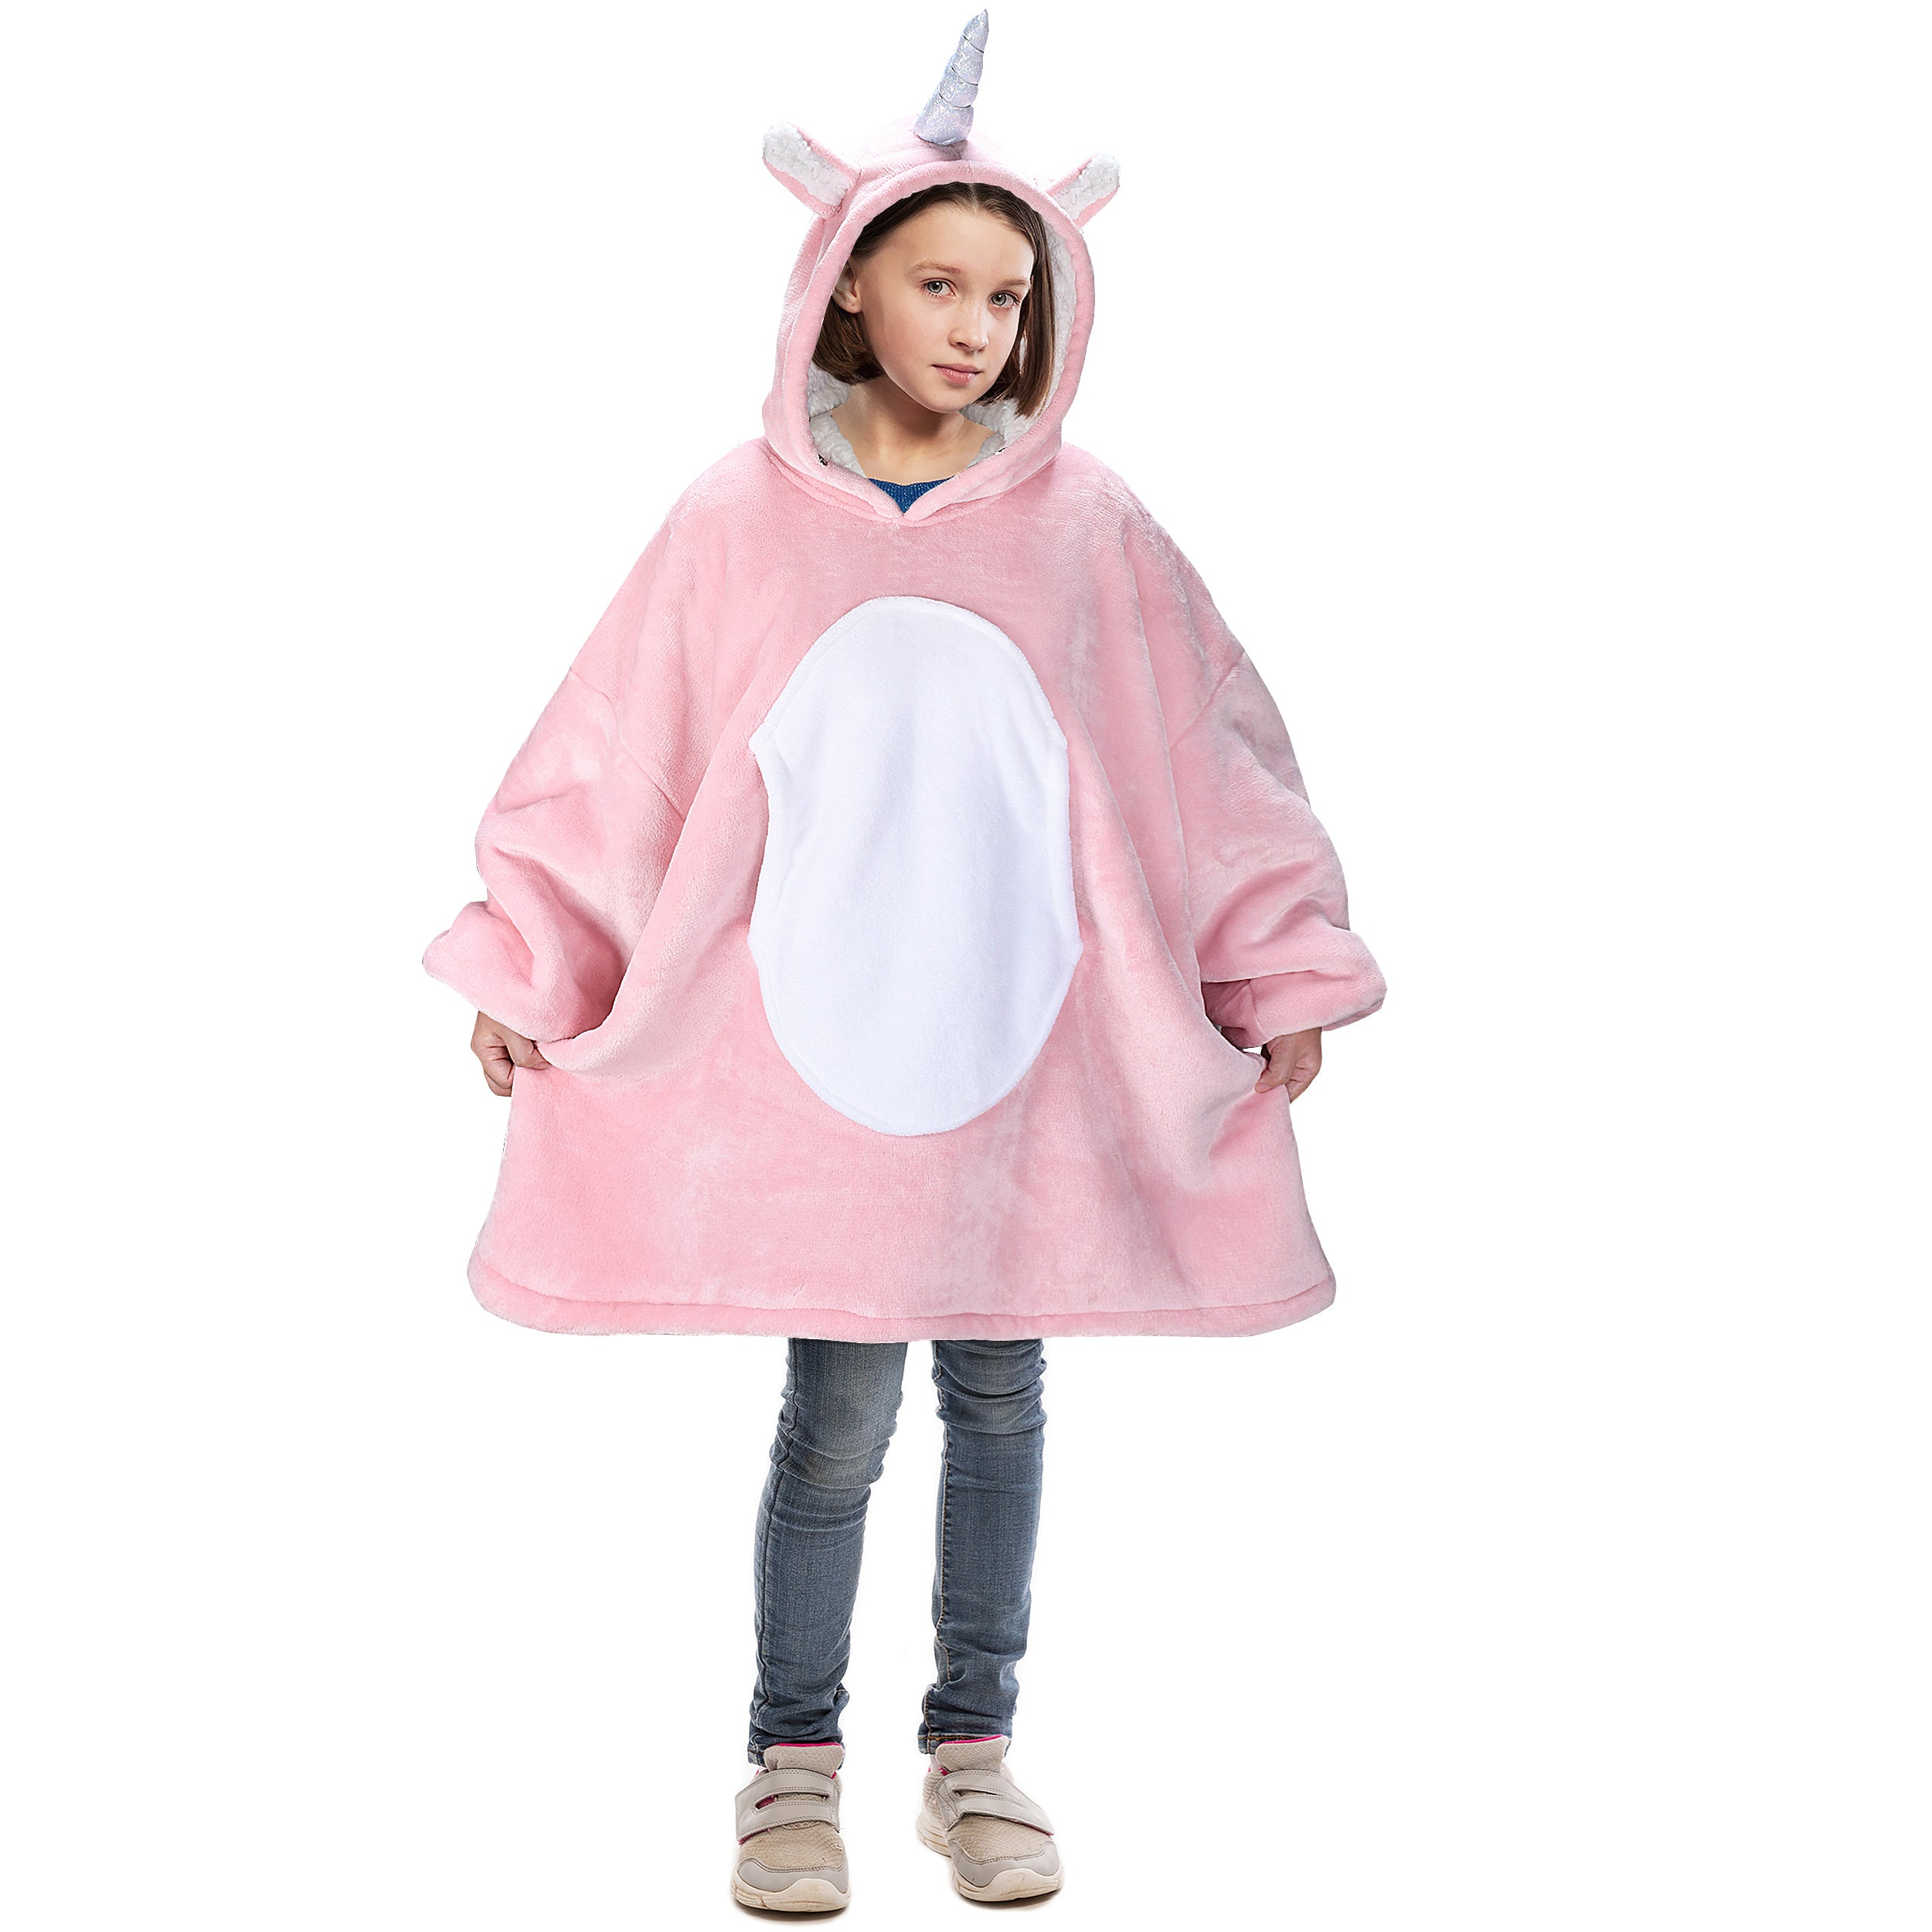 Unicorn Oversized Hoodie Blanket for Adults